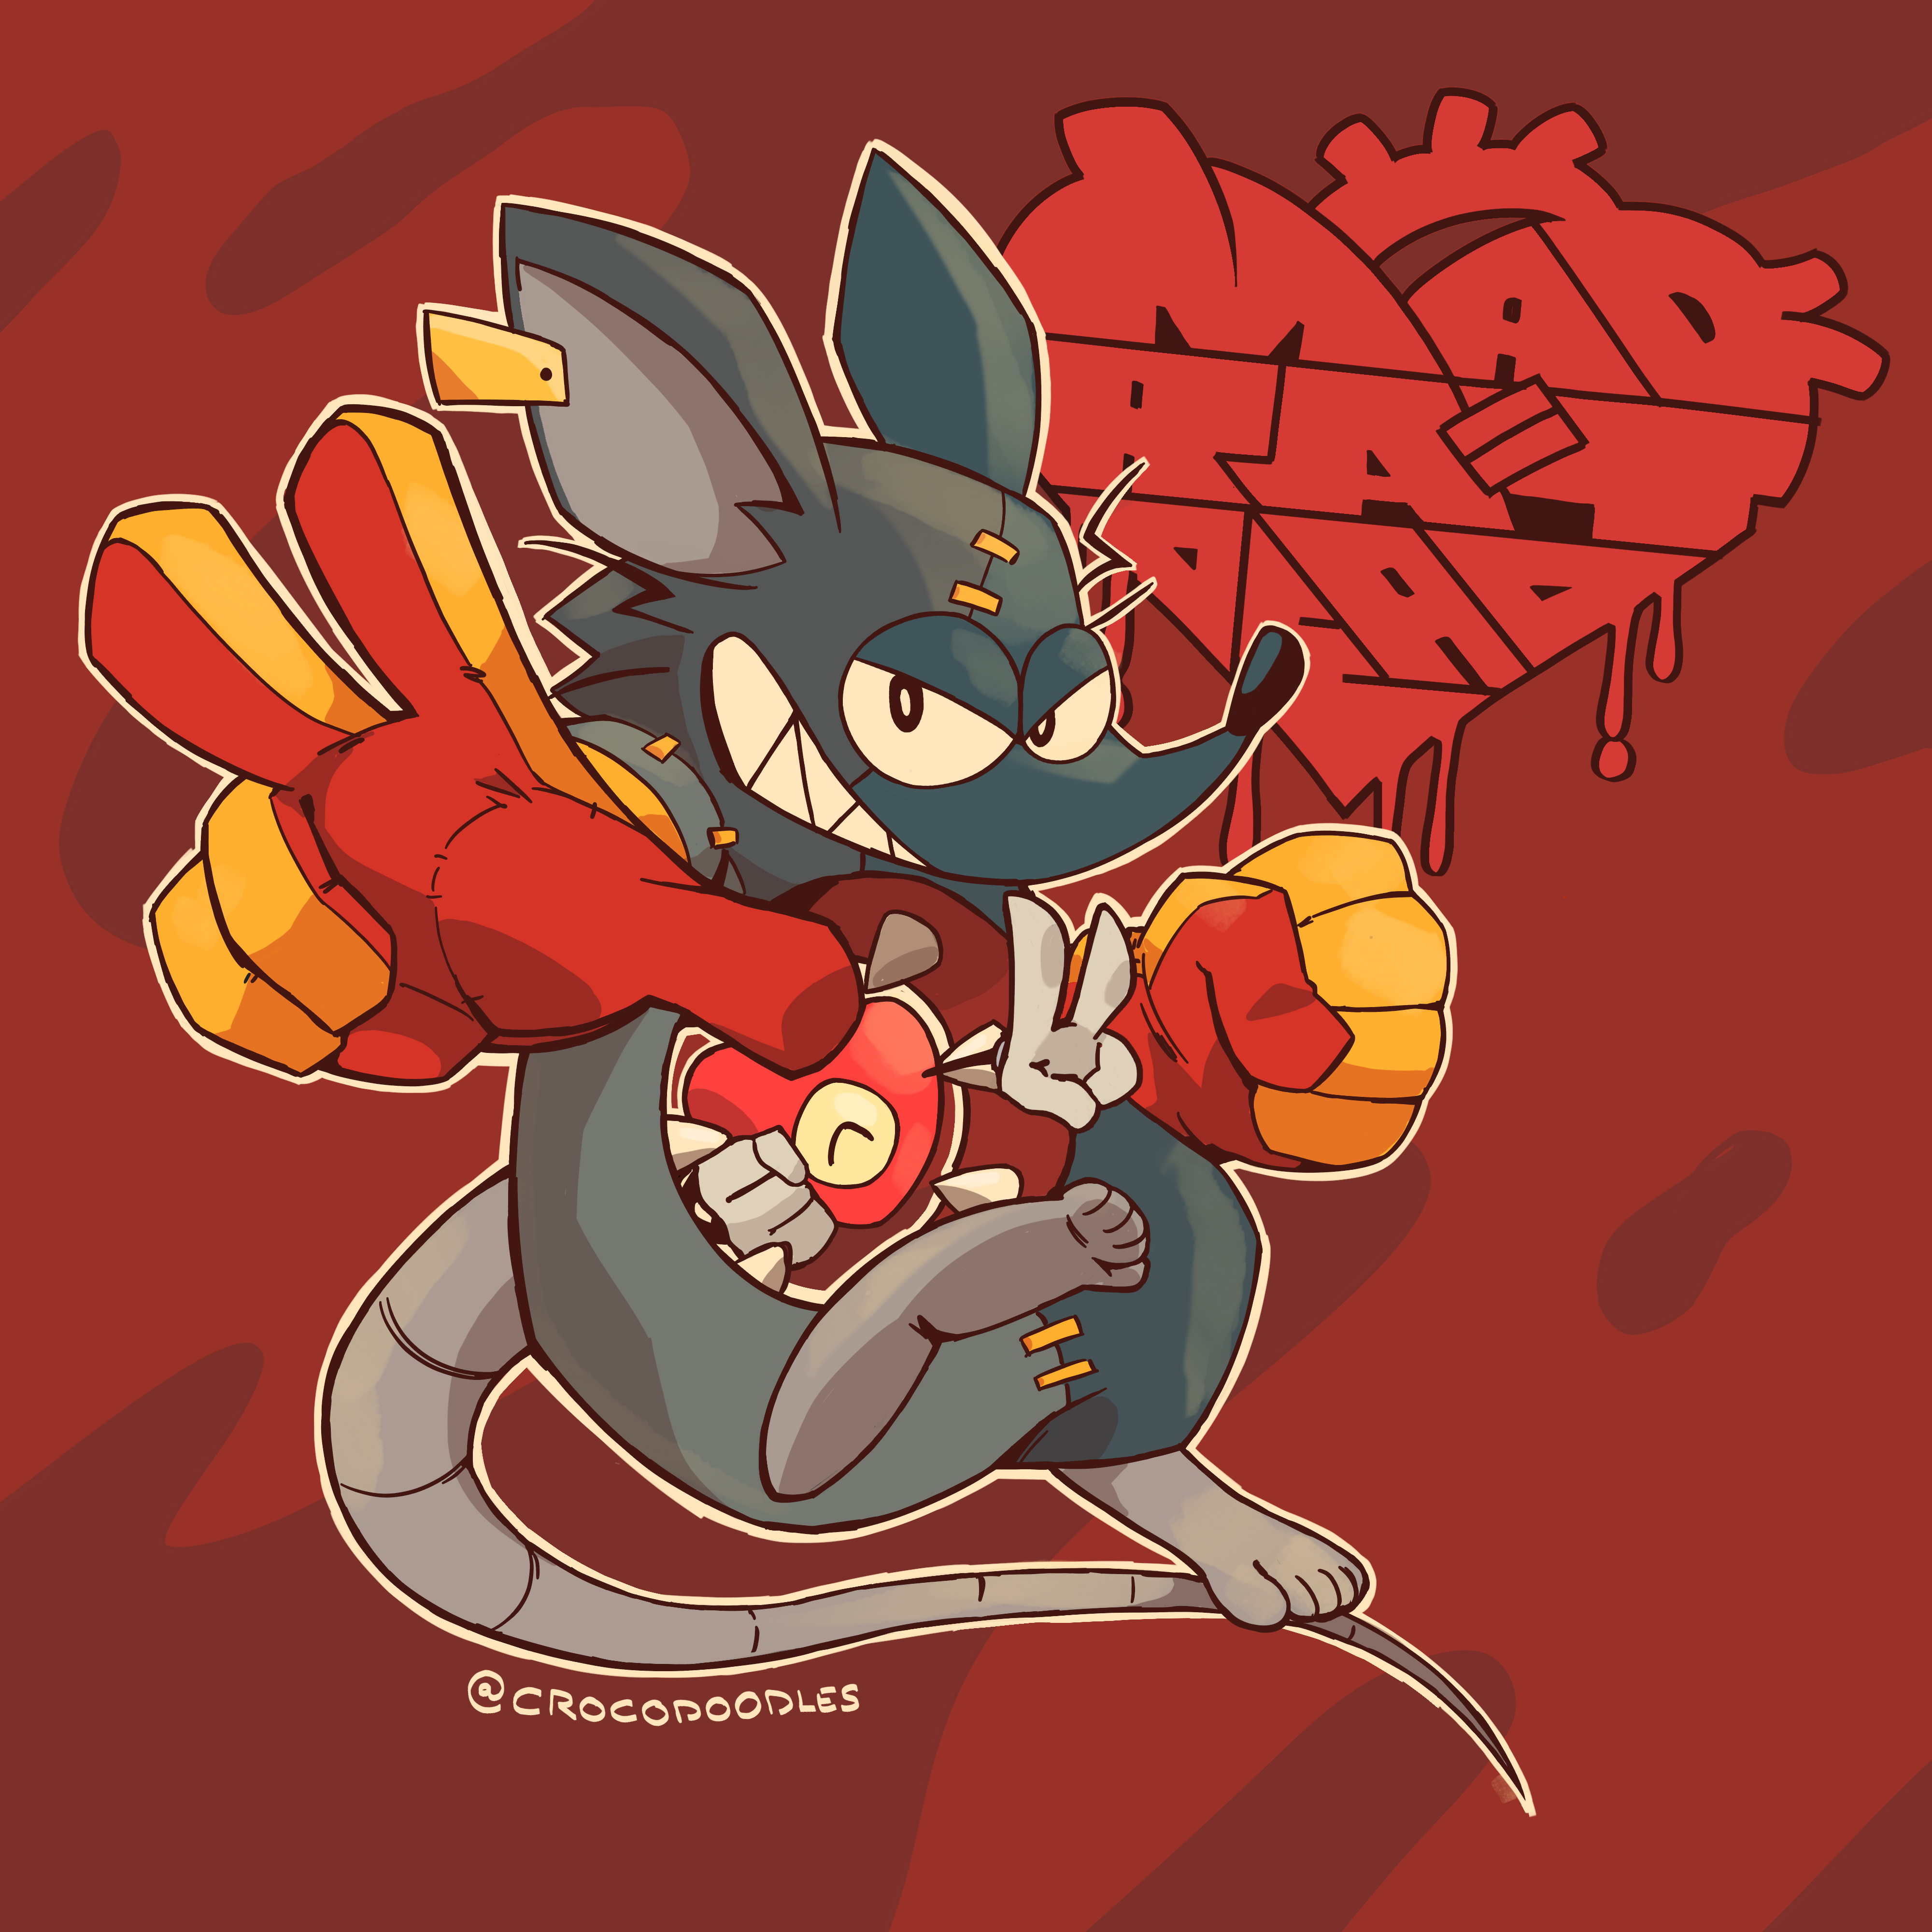 Mad Rat and his Heart